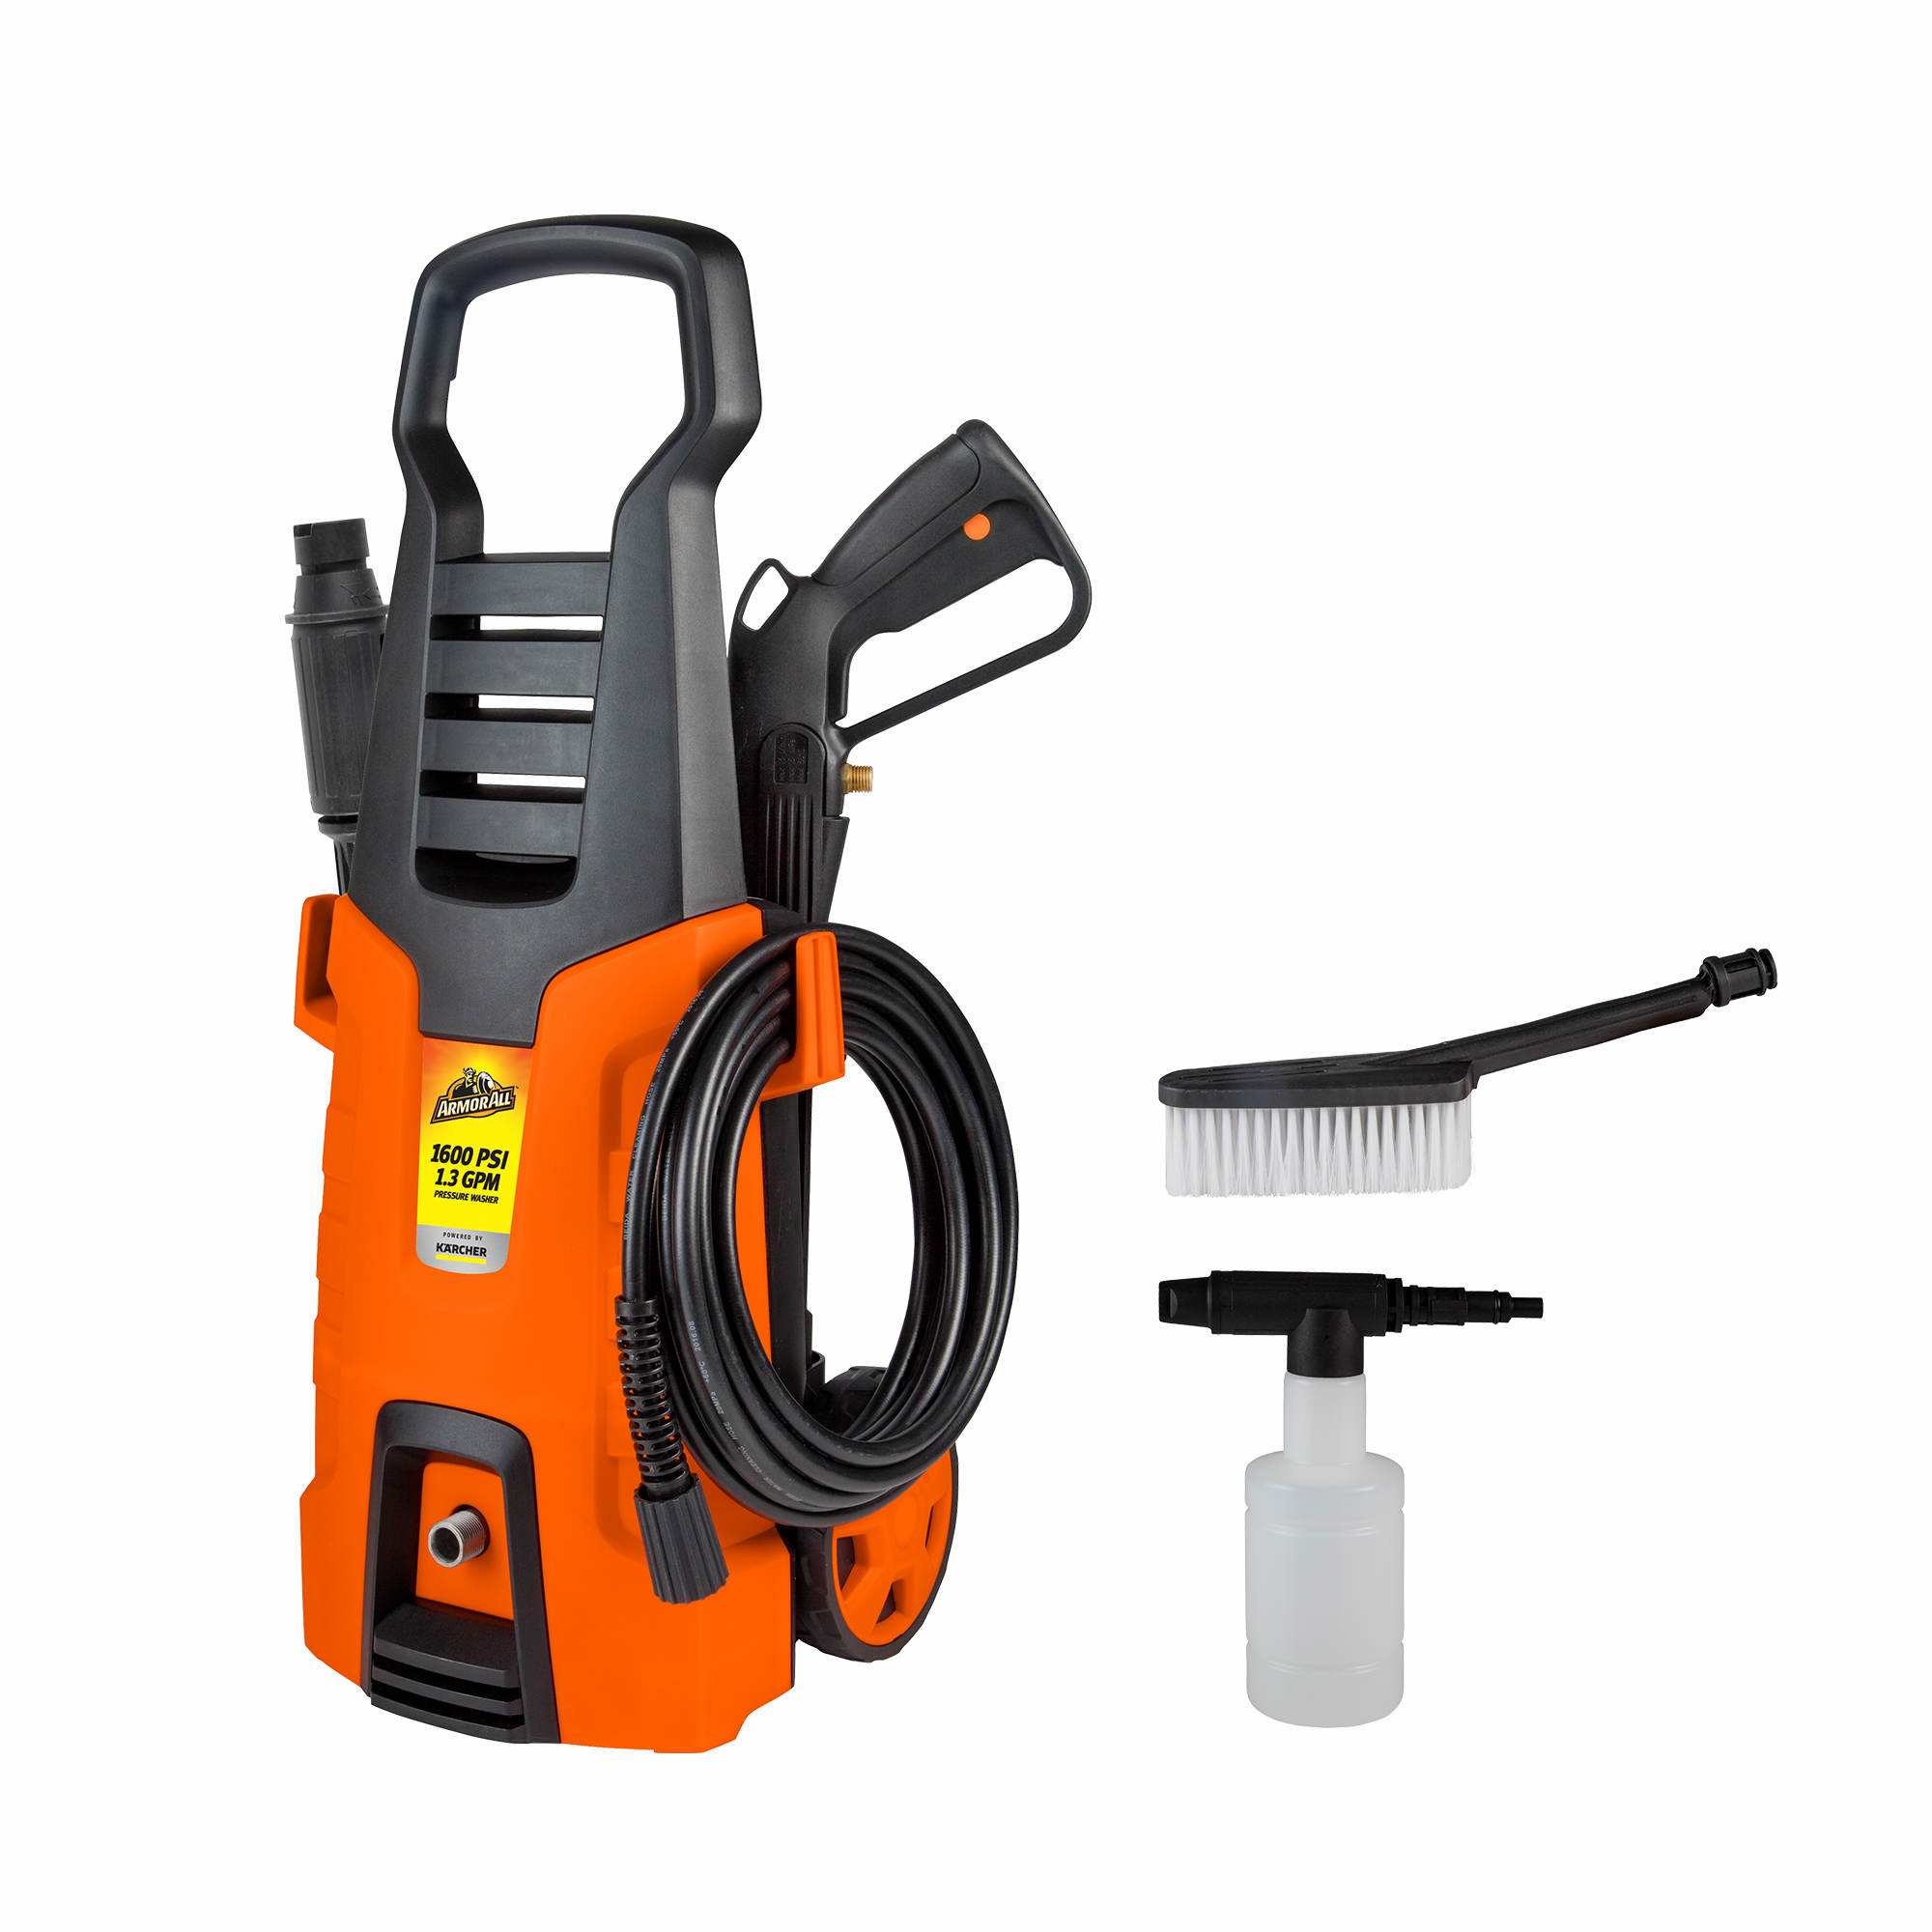 Armor All 1600psi Electric Pressure Washer